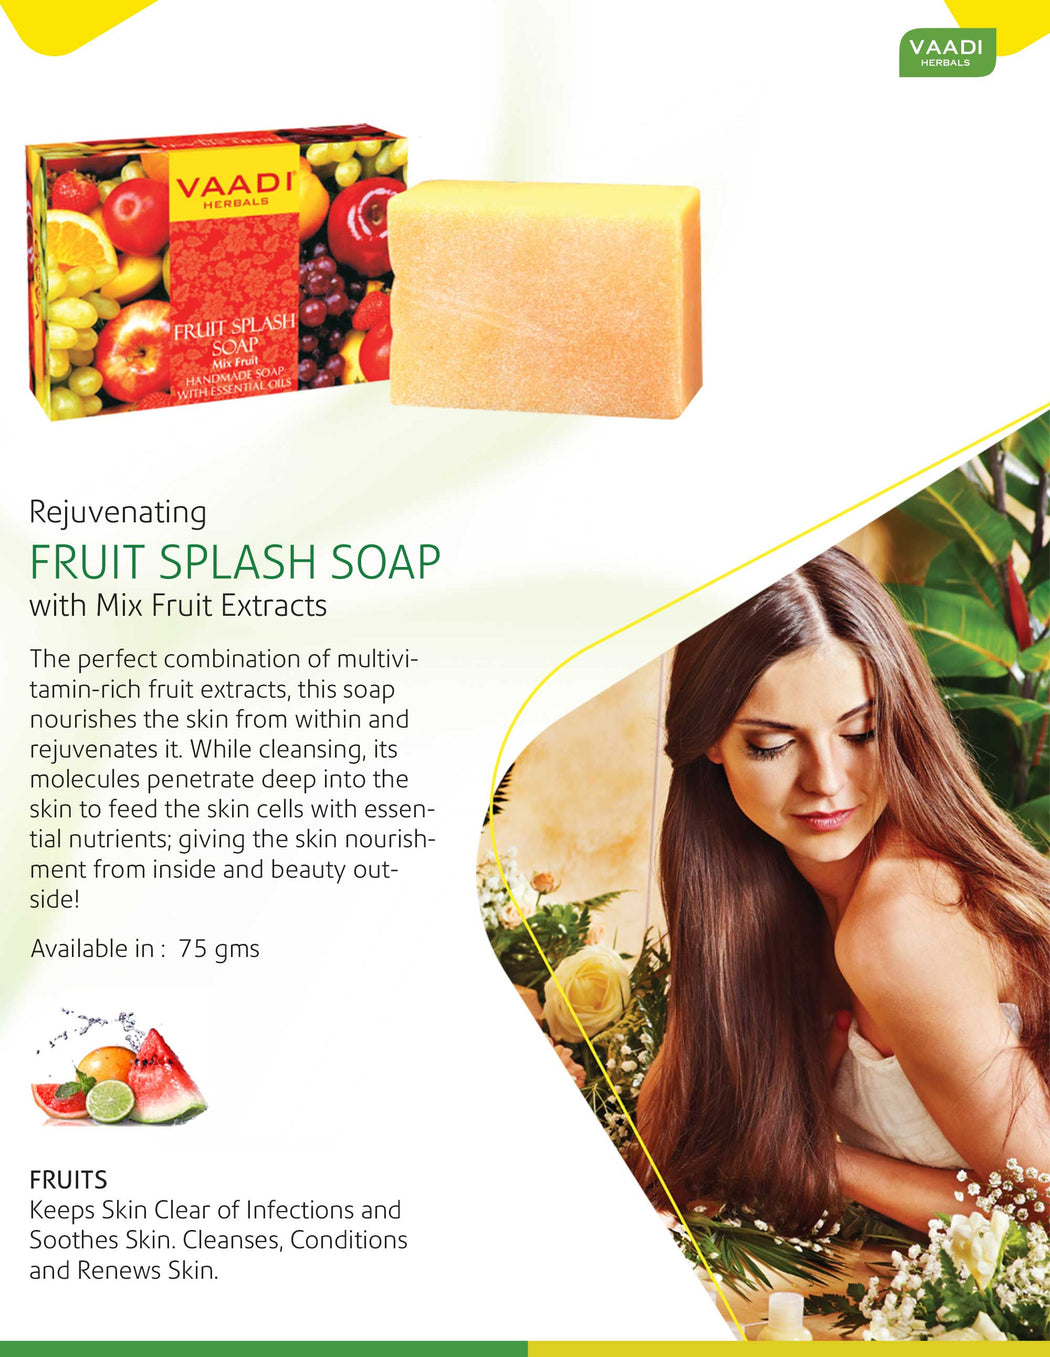 Organic Fruit Splash Soap with Orange, Peach, Lemon & Green Apple - Multivitamin Rich - Keeps Skin Nourished (6 x 75 gms/2.7 oz)